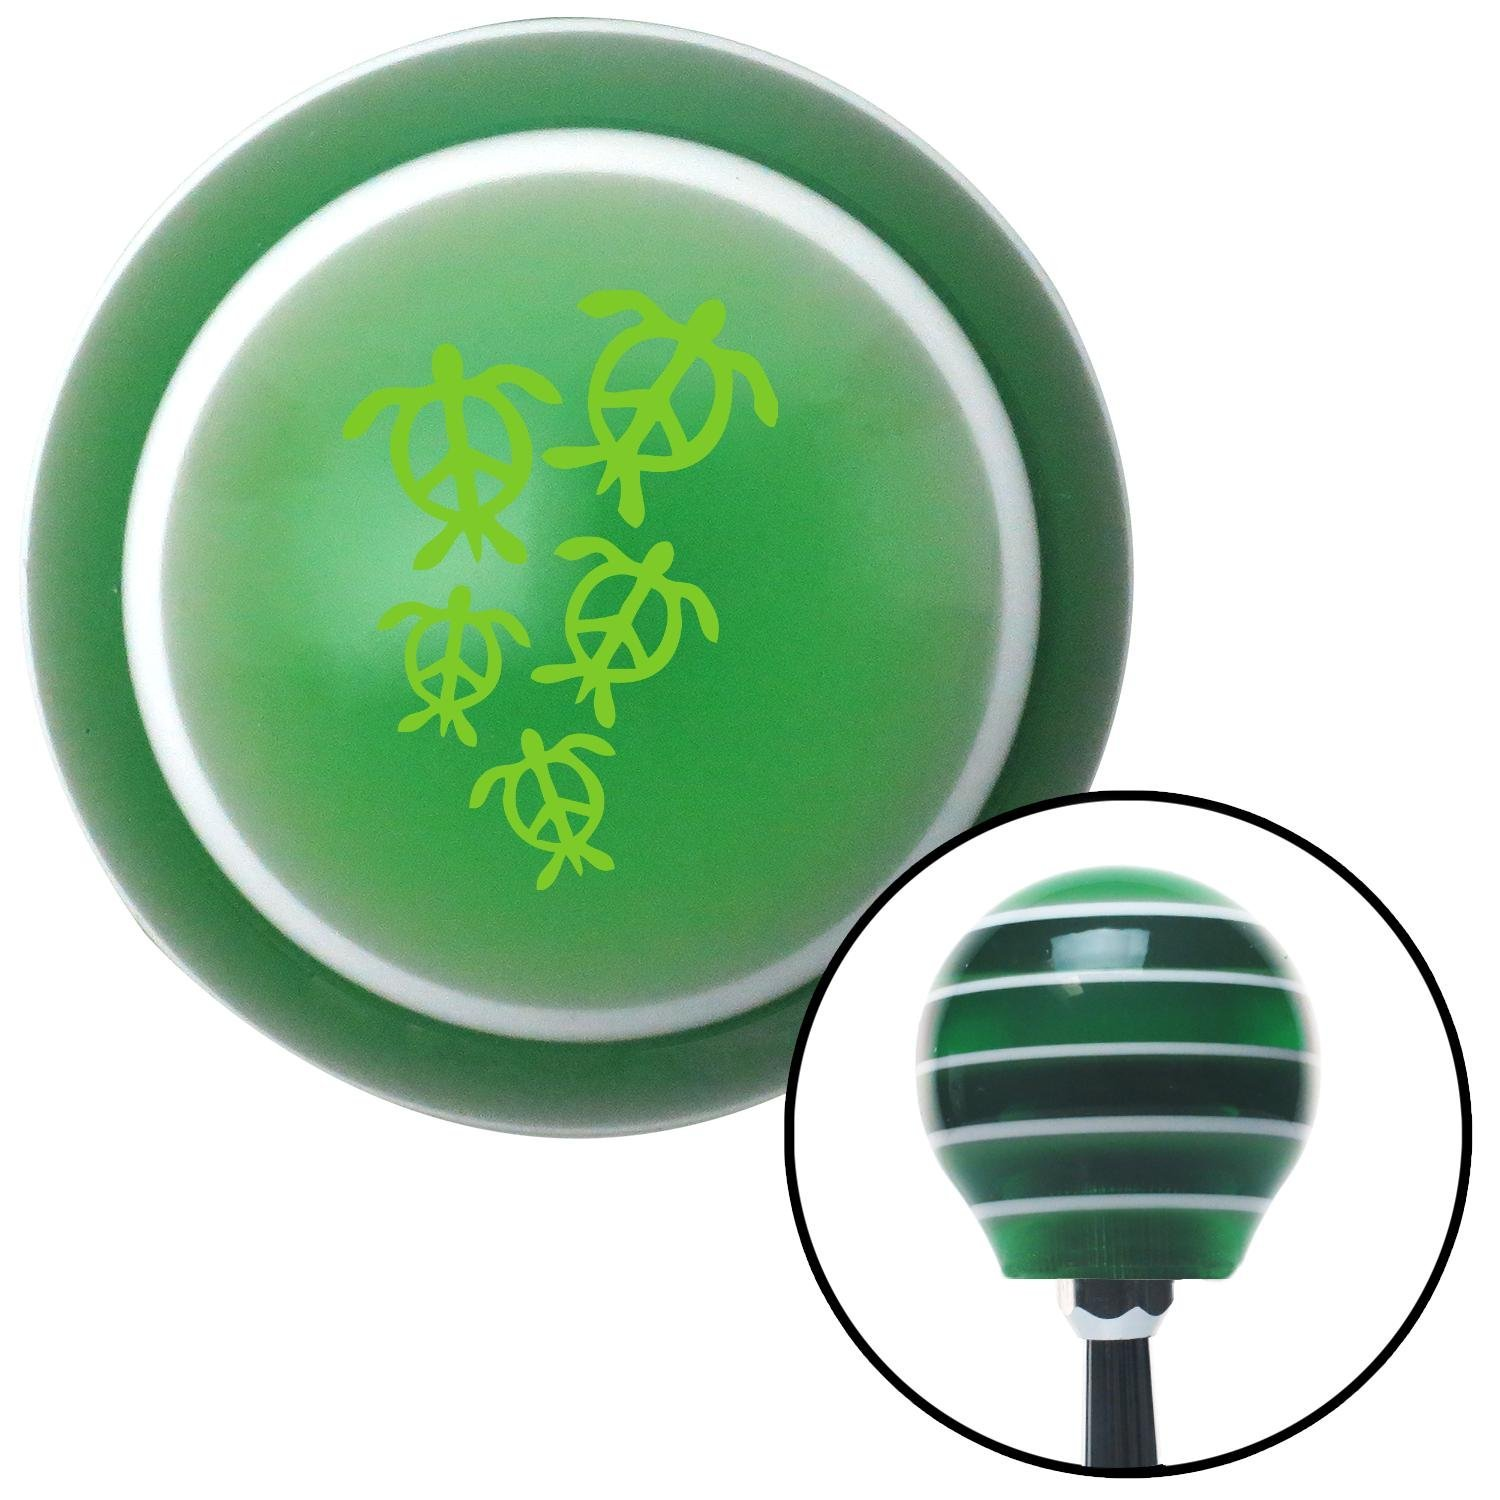 American Shifter 123141 Green Stripe Shift Knob with M16 x 1.5 Insert Green Peace Turtles